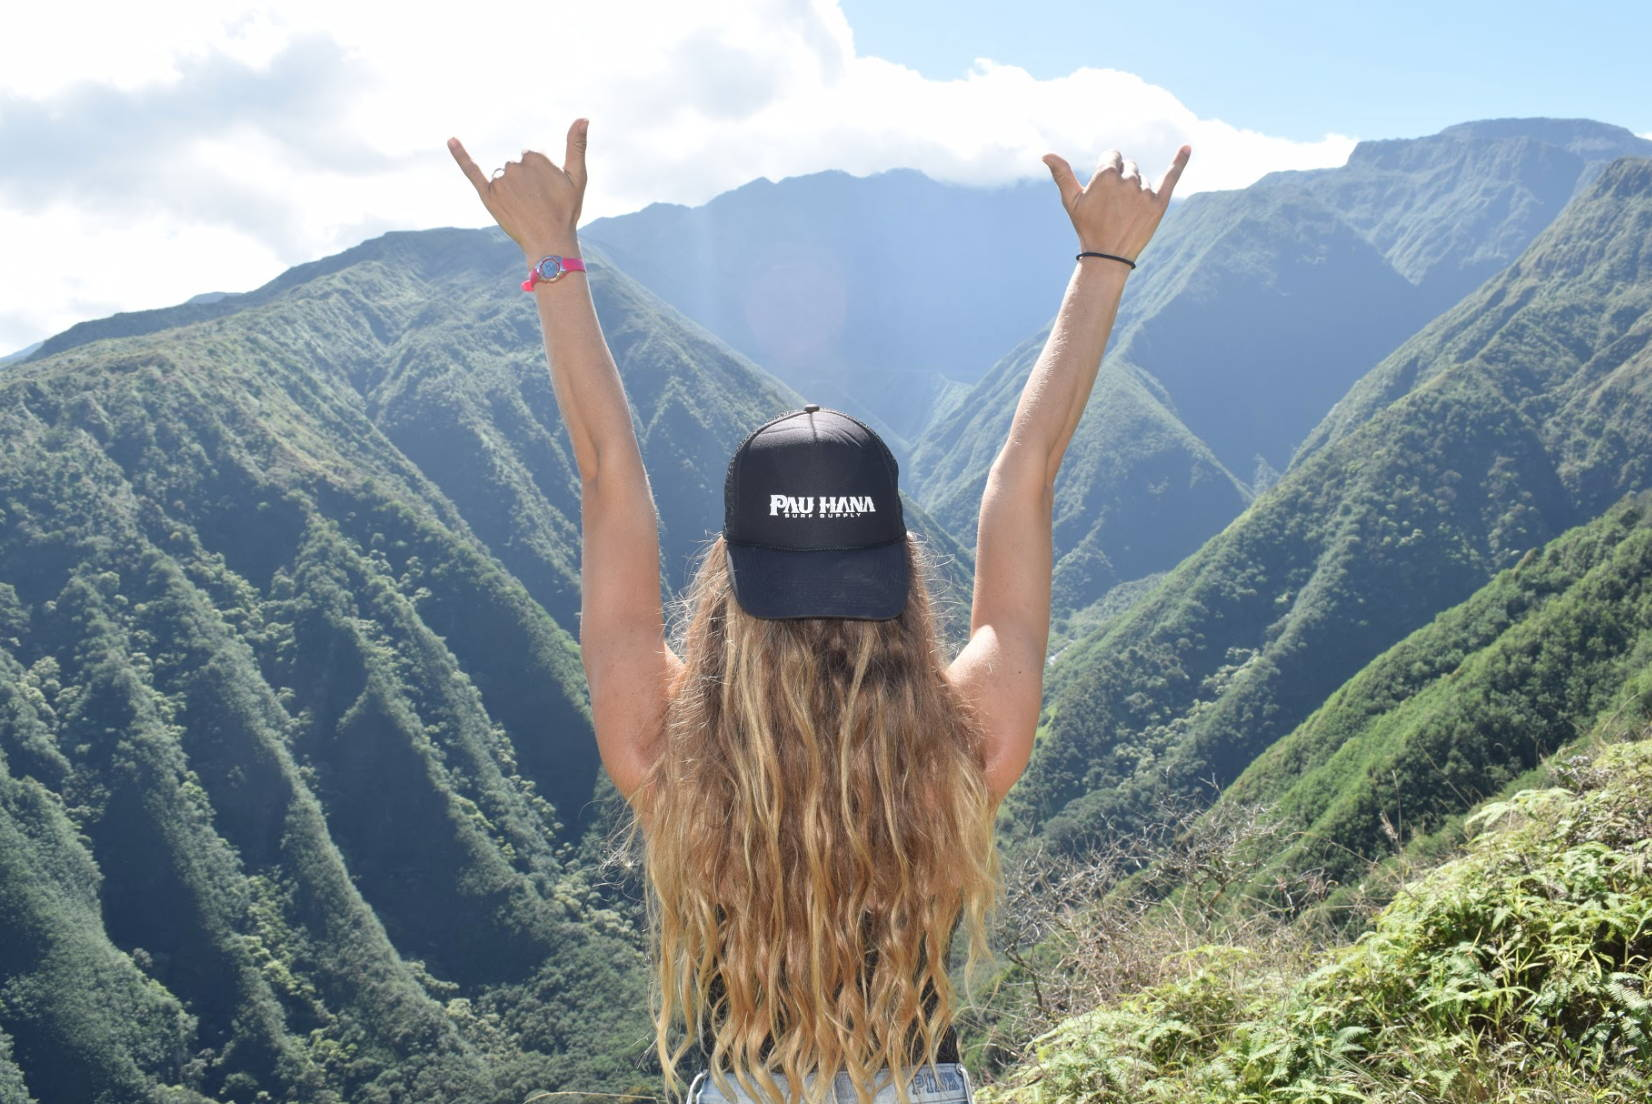 Shaka on Maui with Pau Hana black hat